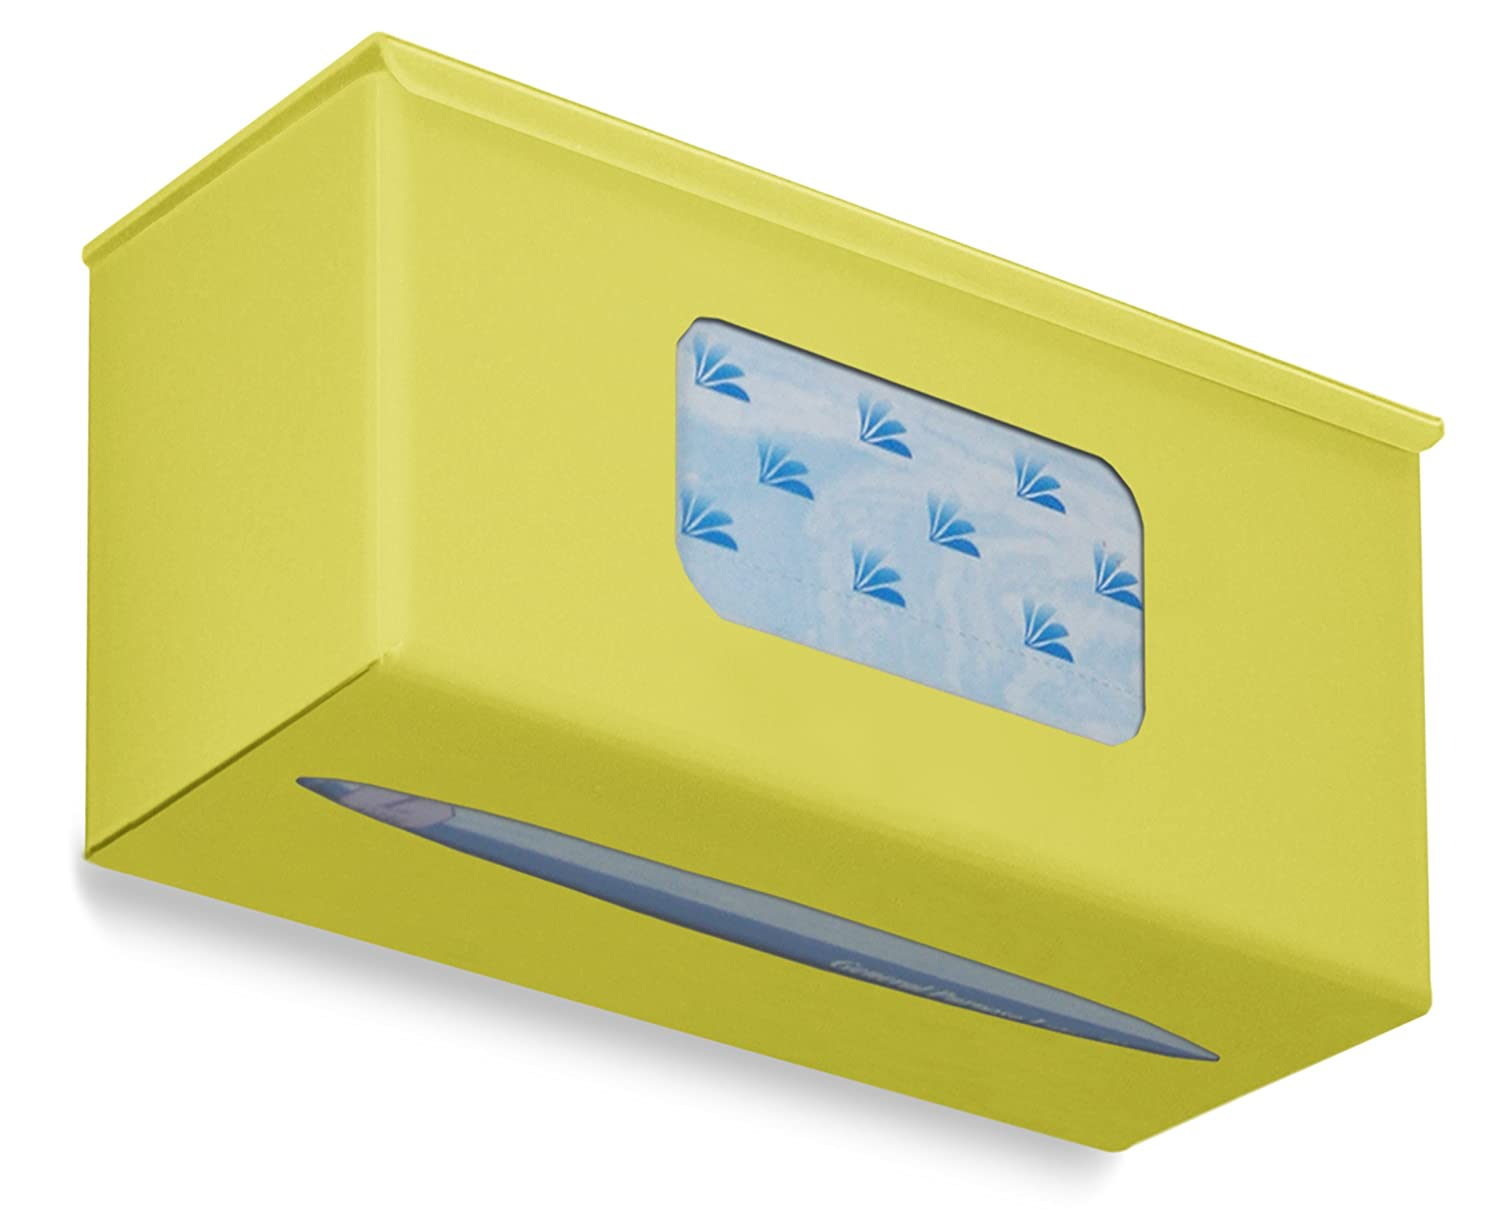 10 Width x 5 Height x 4 Depth TrippNT 52049  Ultimate Plain Single Bright Idea Yellow Dual Dispensing Glove Holder